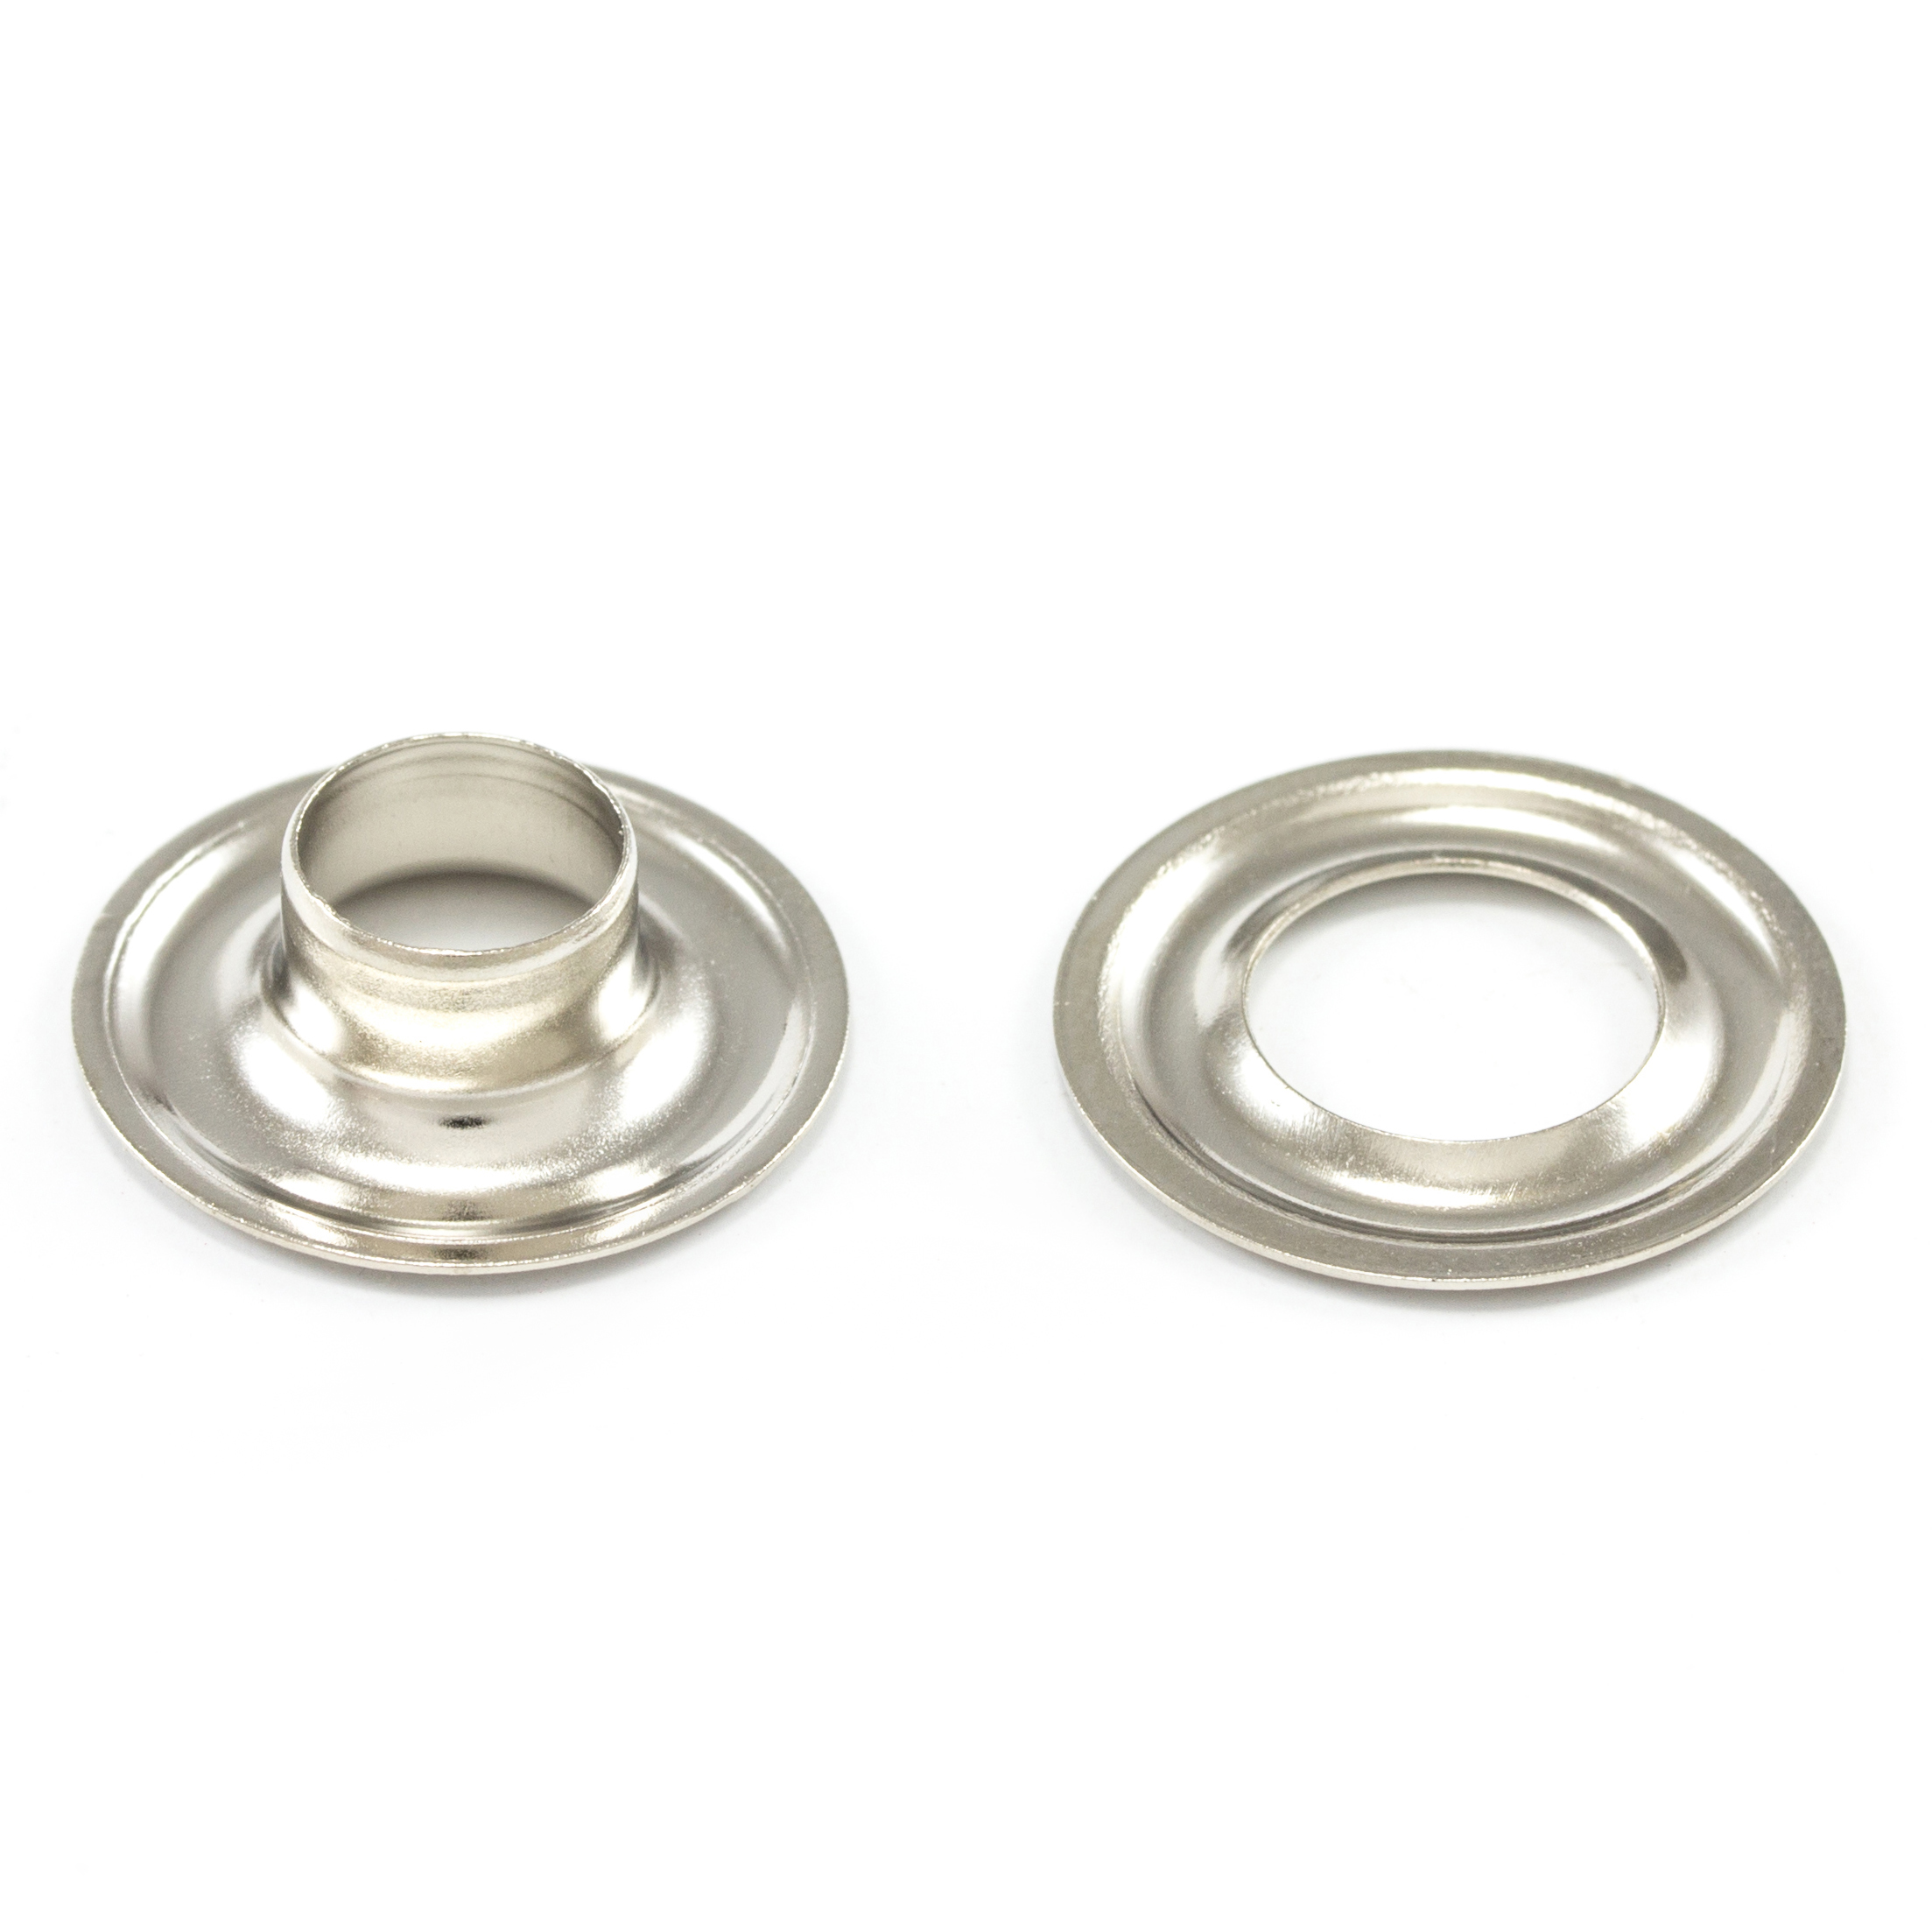 DOT Grommet with Plain Washer #1 Nickel Plated Brass 9/32